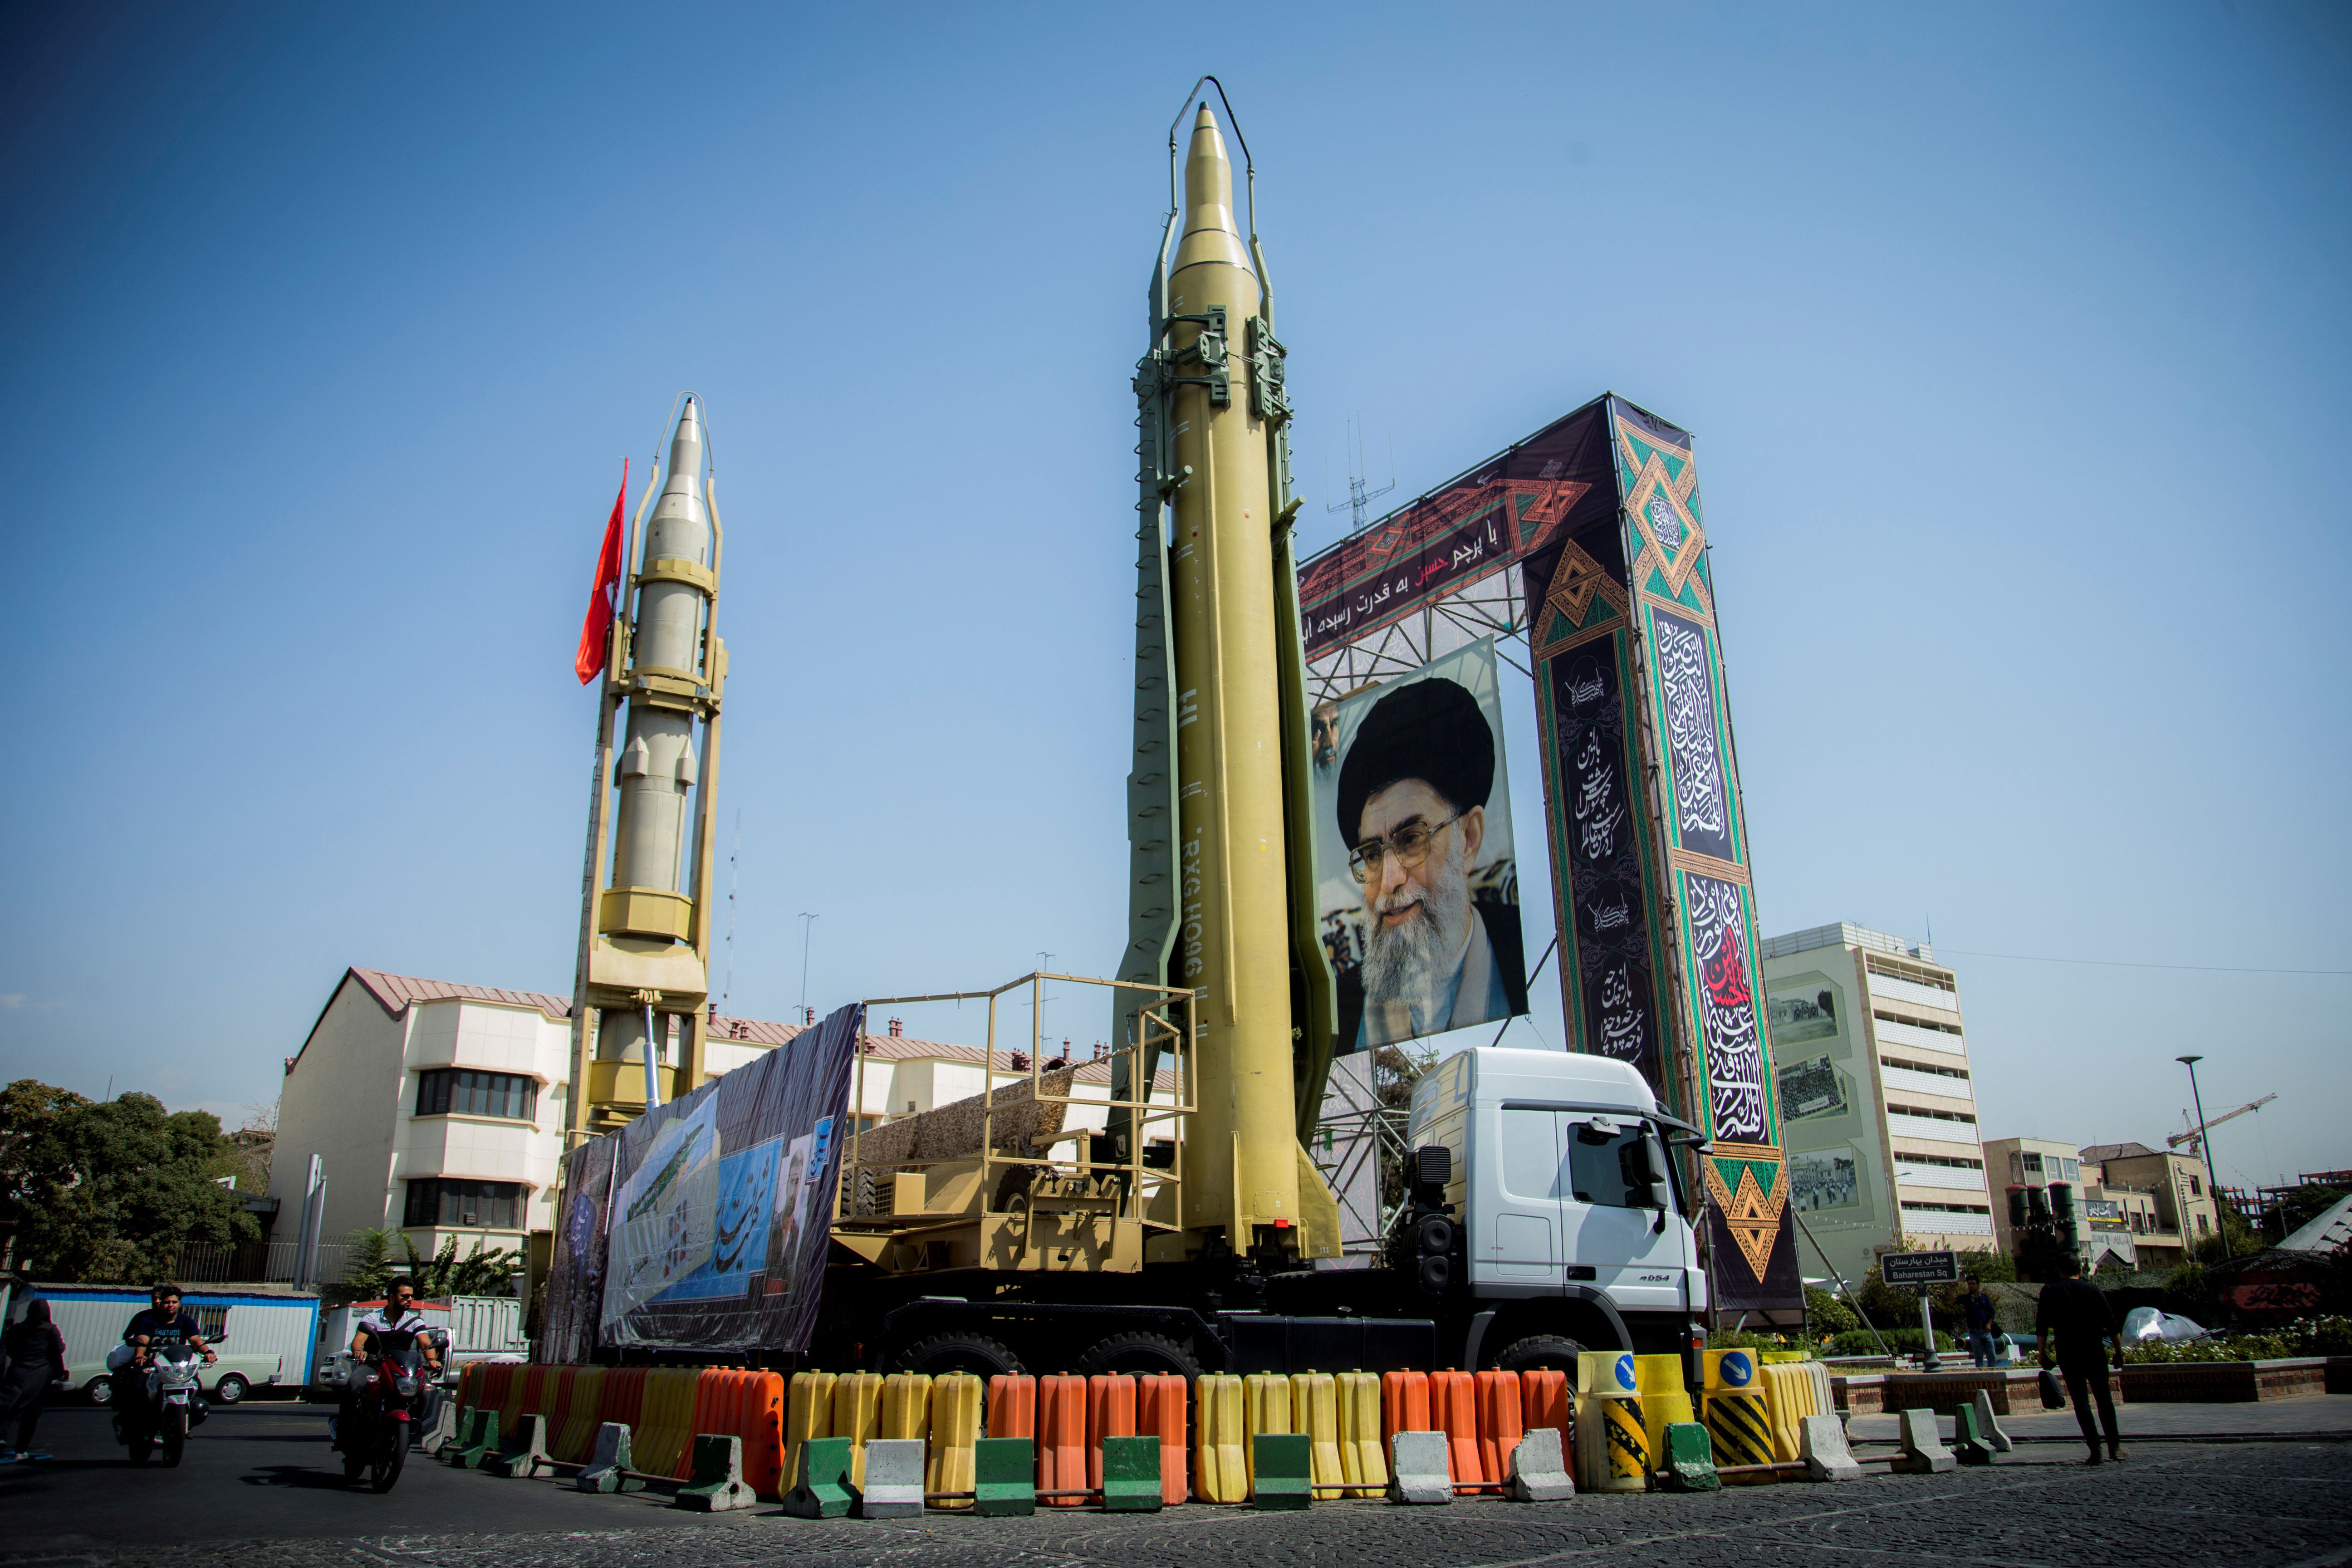 FILE PHOTO: A display featuring missiles and a portrait of Iran's Supreme Leader Ayatollah Ali Khamenei is seen at Baharestan Square in Tehran, Iran September 27, 2017. Picture taken September 27, 2017. Nazanin Tabatabaee Yazdi/TIMA via REUTERS ATTENTION EDITORS - THIS IMAGE WAS PROVIDED BY A THIRD PARTY/File Photo